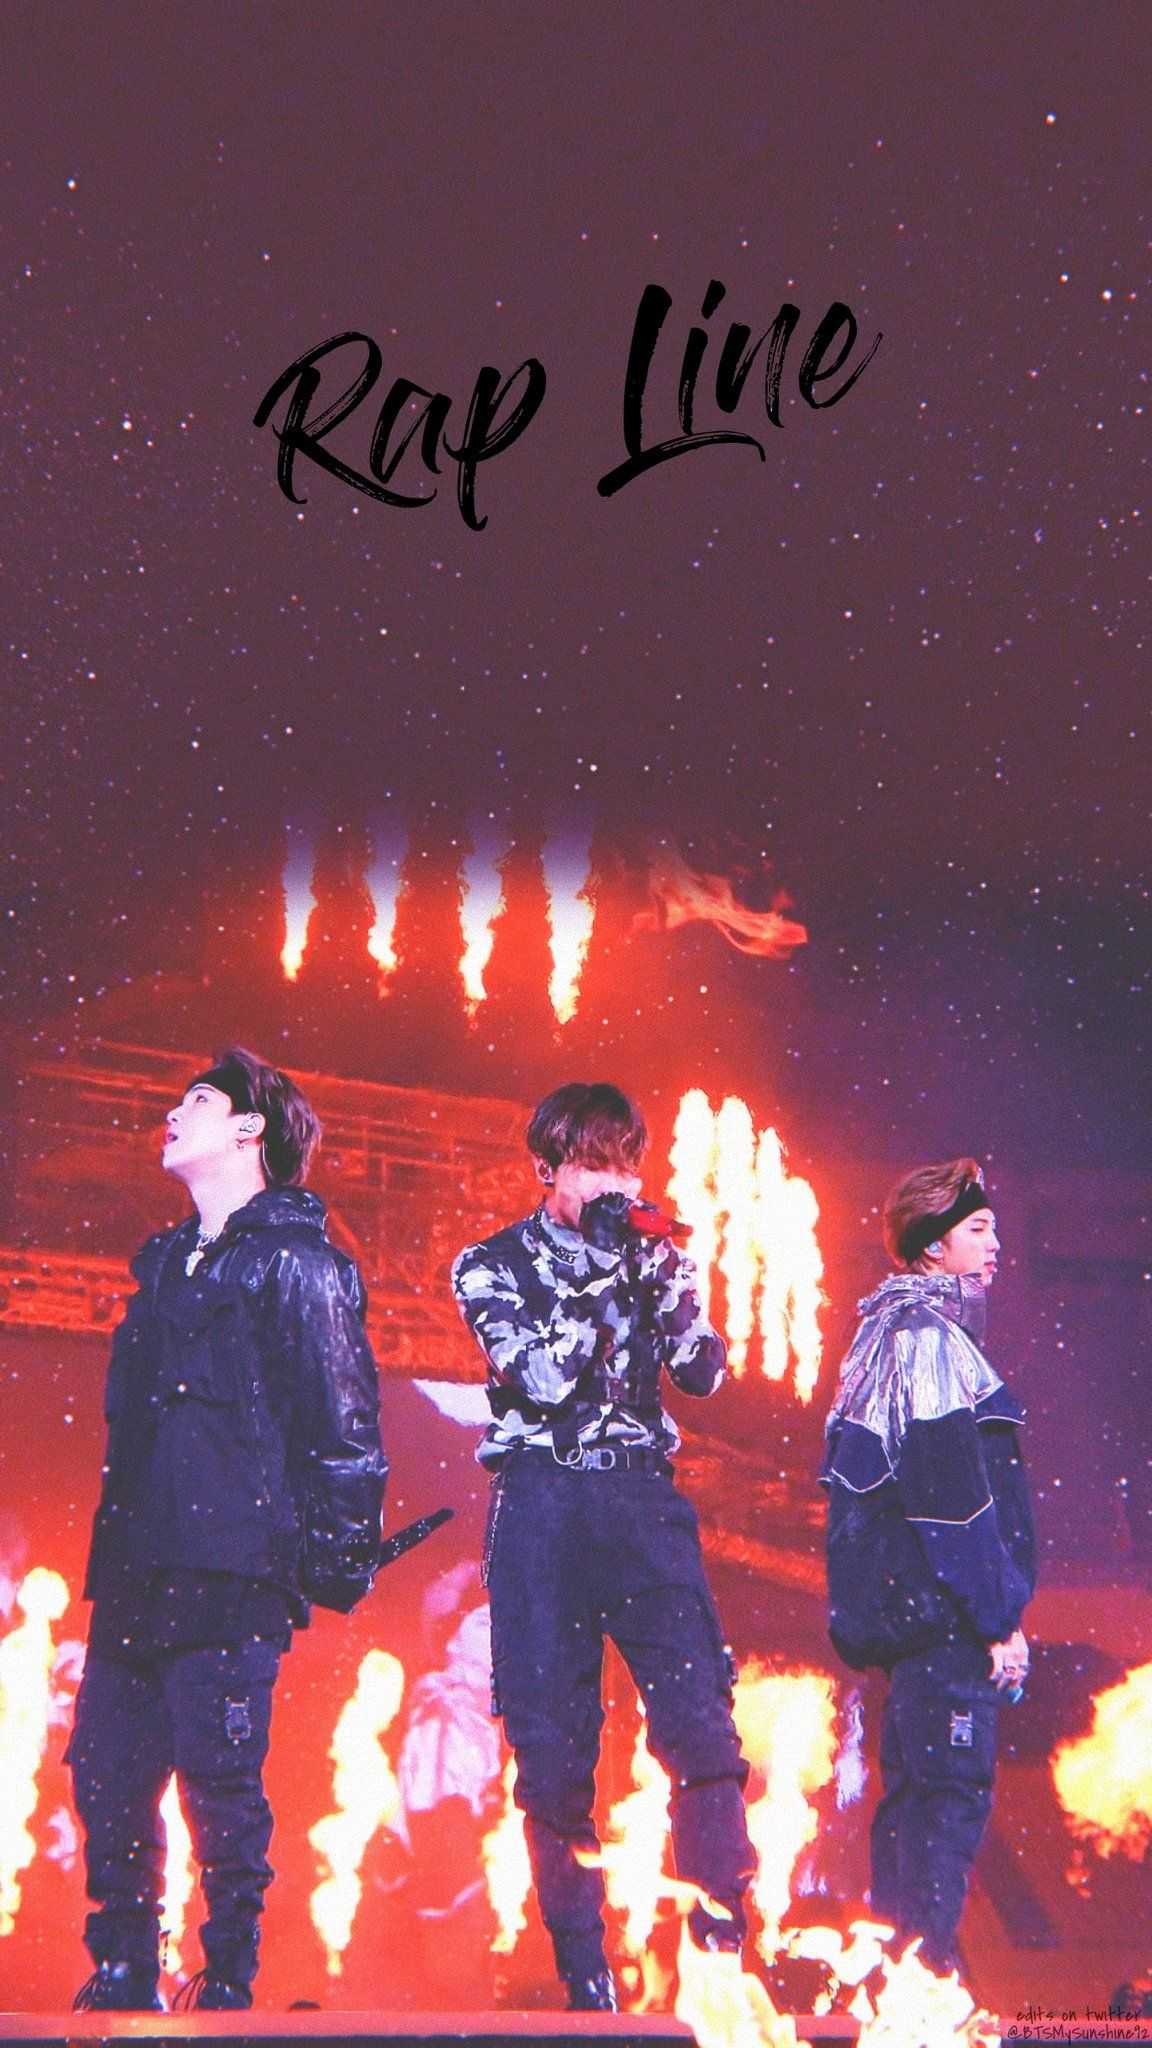 SY TOUR [THE FINAL] Photo Sketch BTS Wallpaper Lockscreen & Edit   #bts #jk #v #jimin #jhope #suga #jin #rm #jhopewallpaper